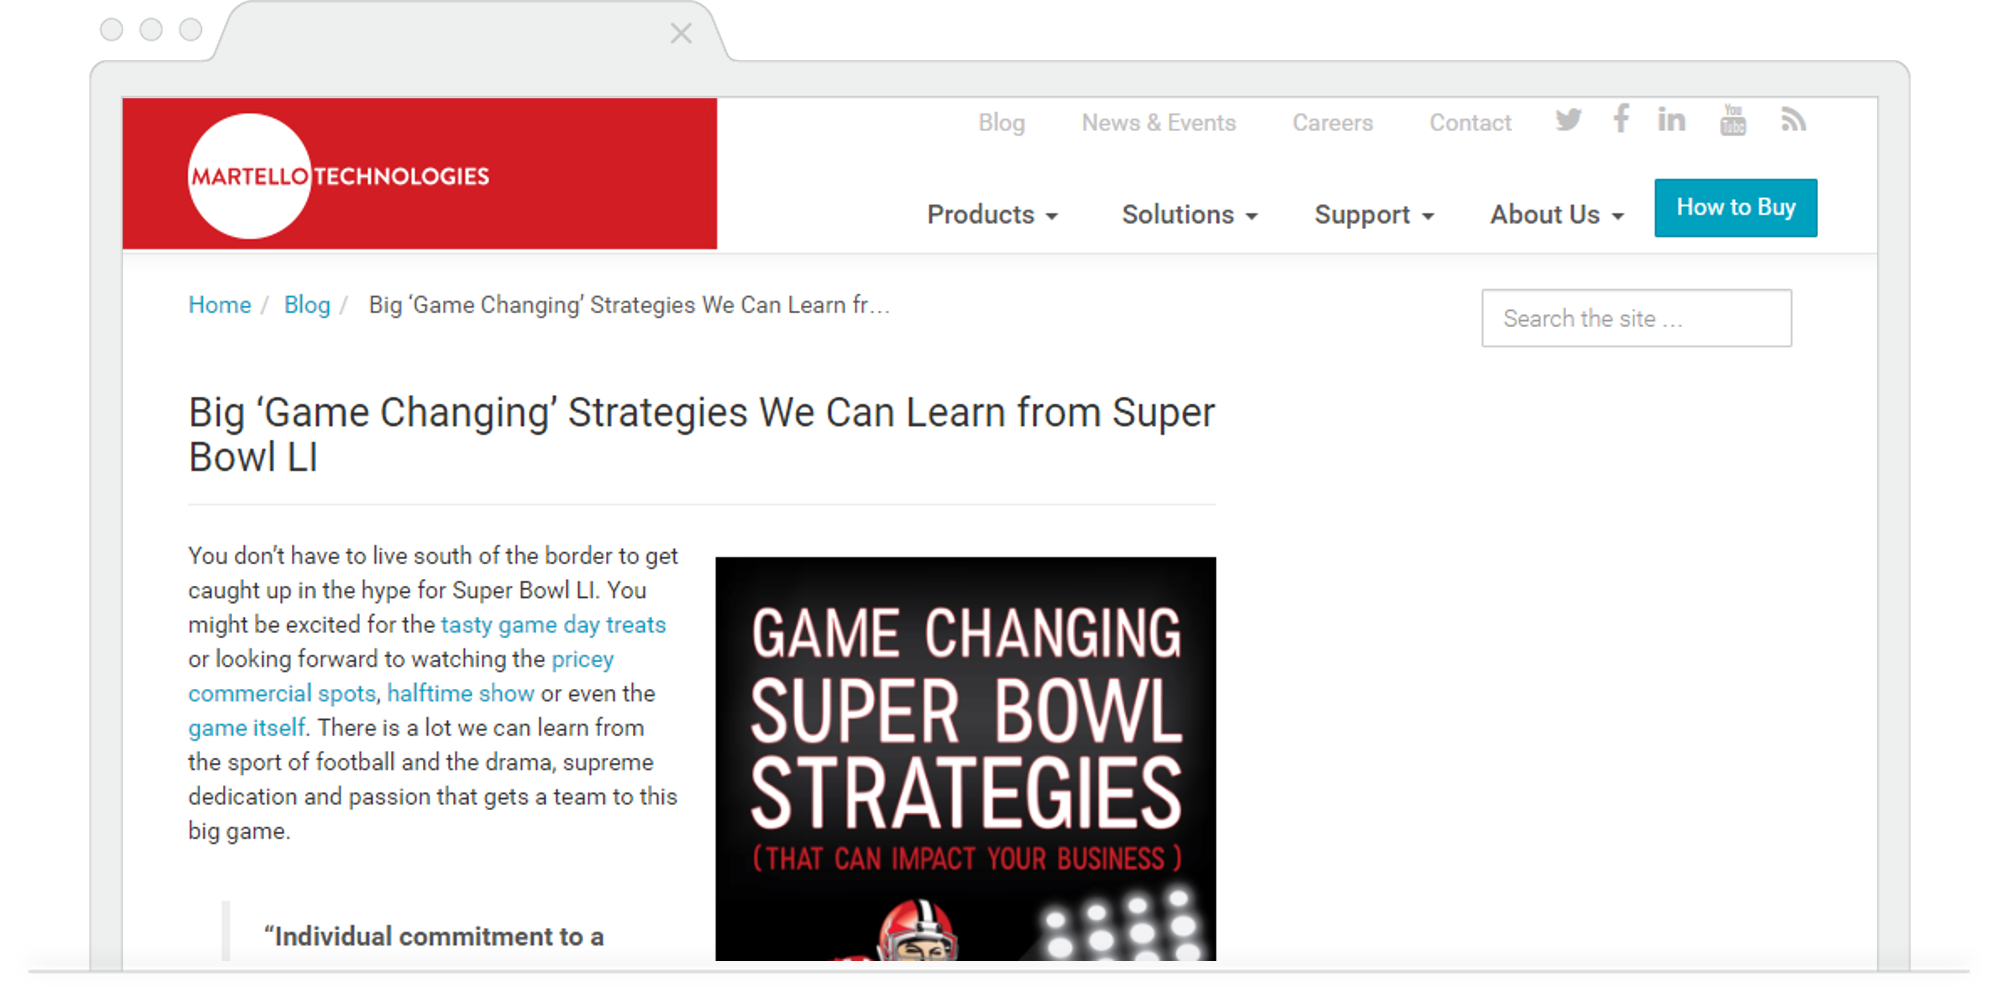 Martello Technologies Super Bowl Game Changing Strategies